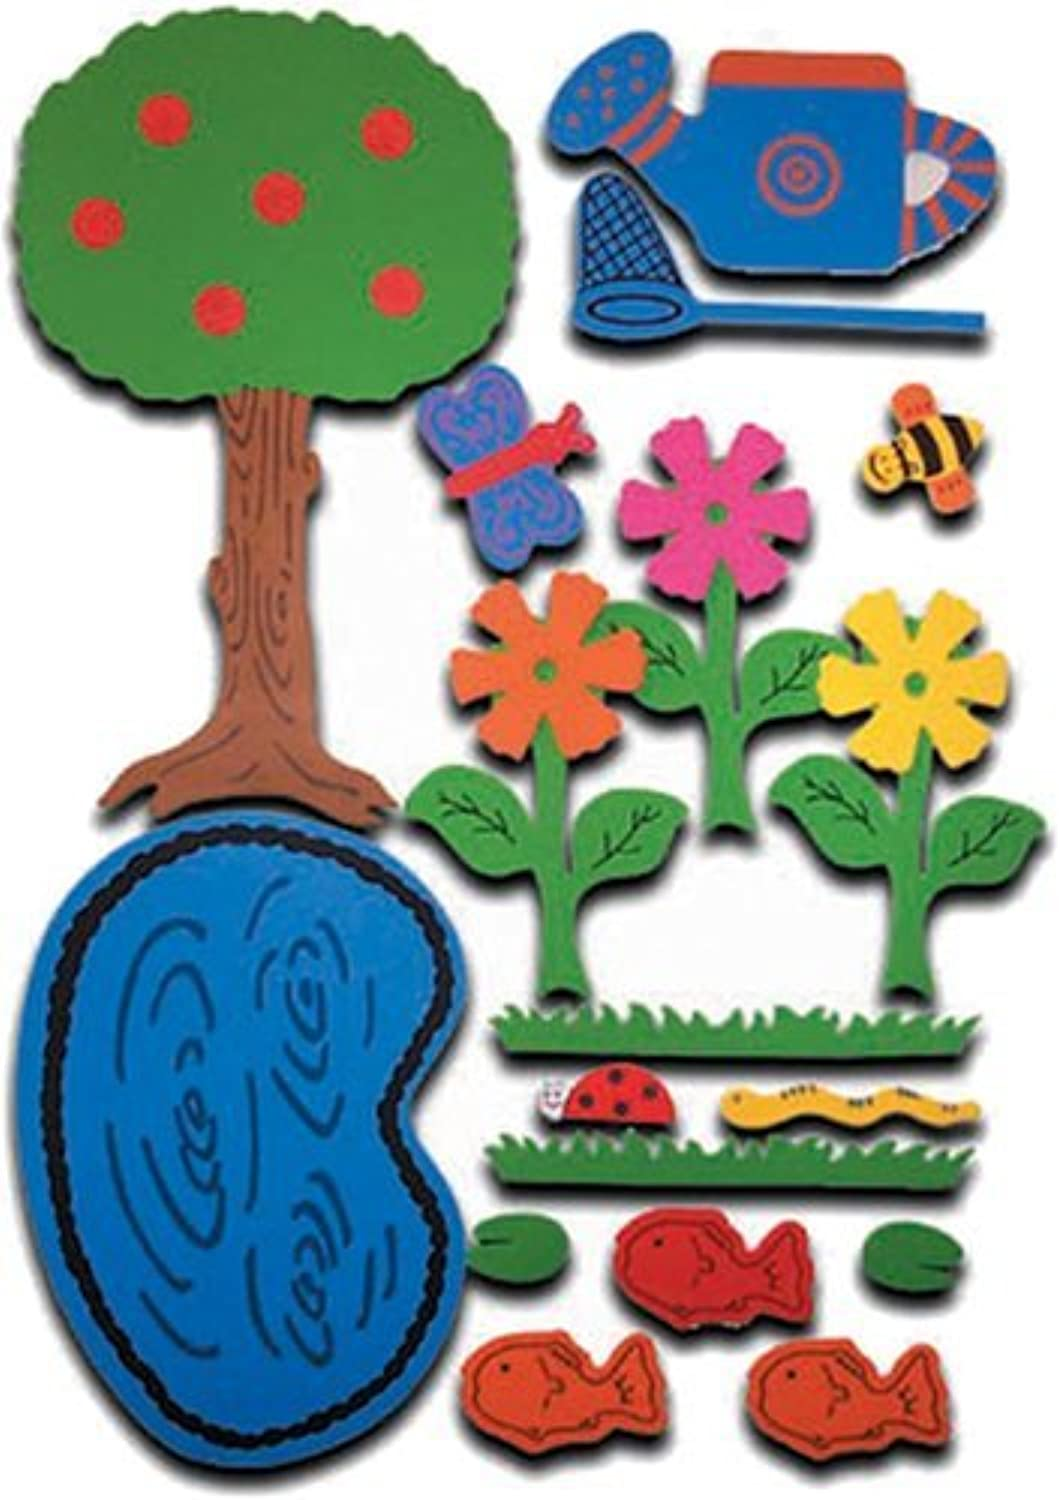 Daydream Toy  SquashBlox Garden Accessory Kit (cushions sold separately) by Daydream Toy